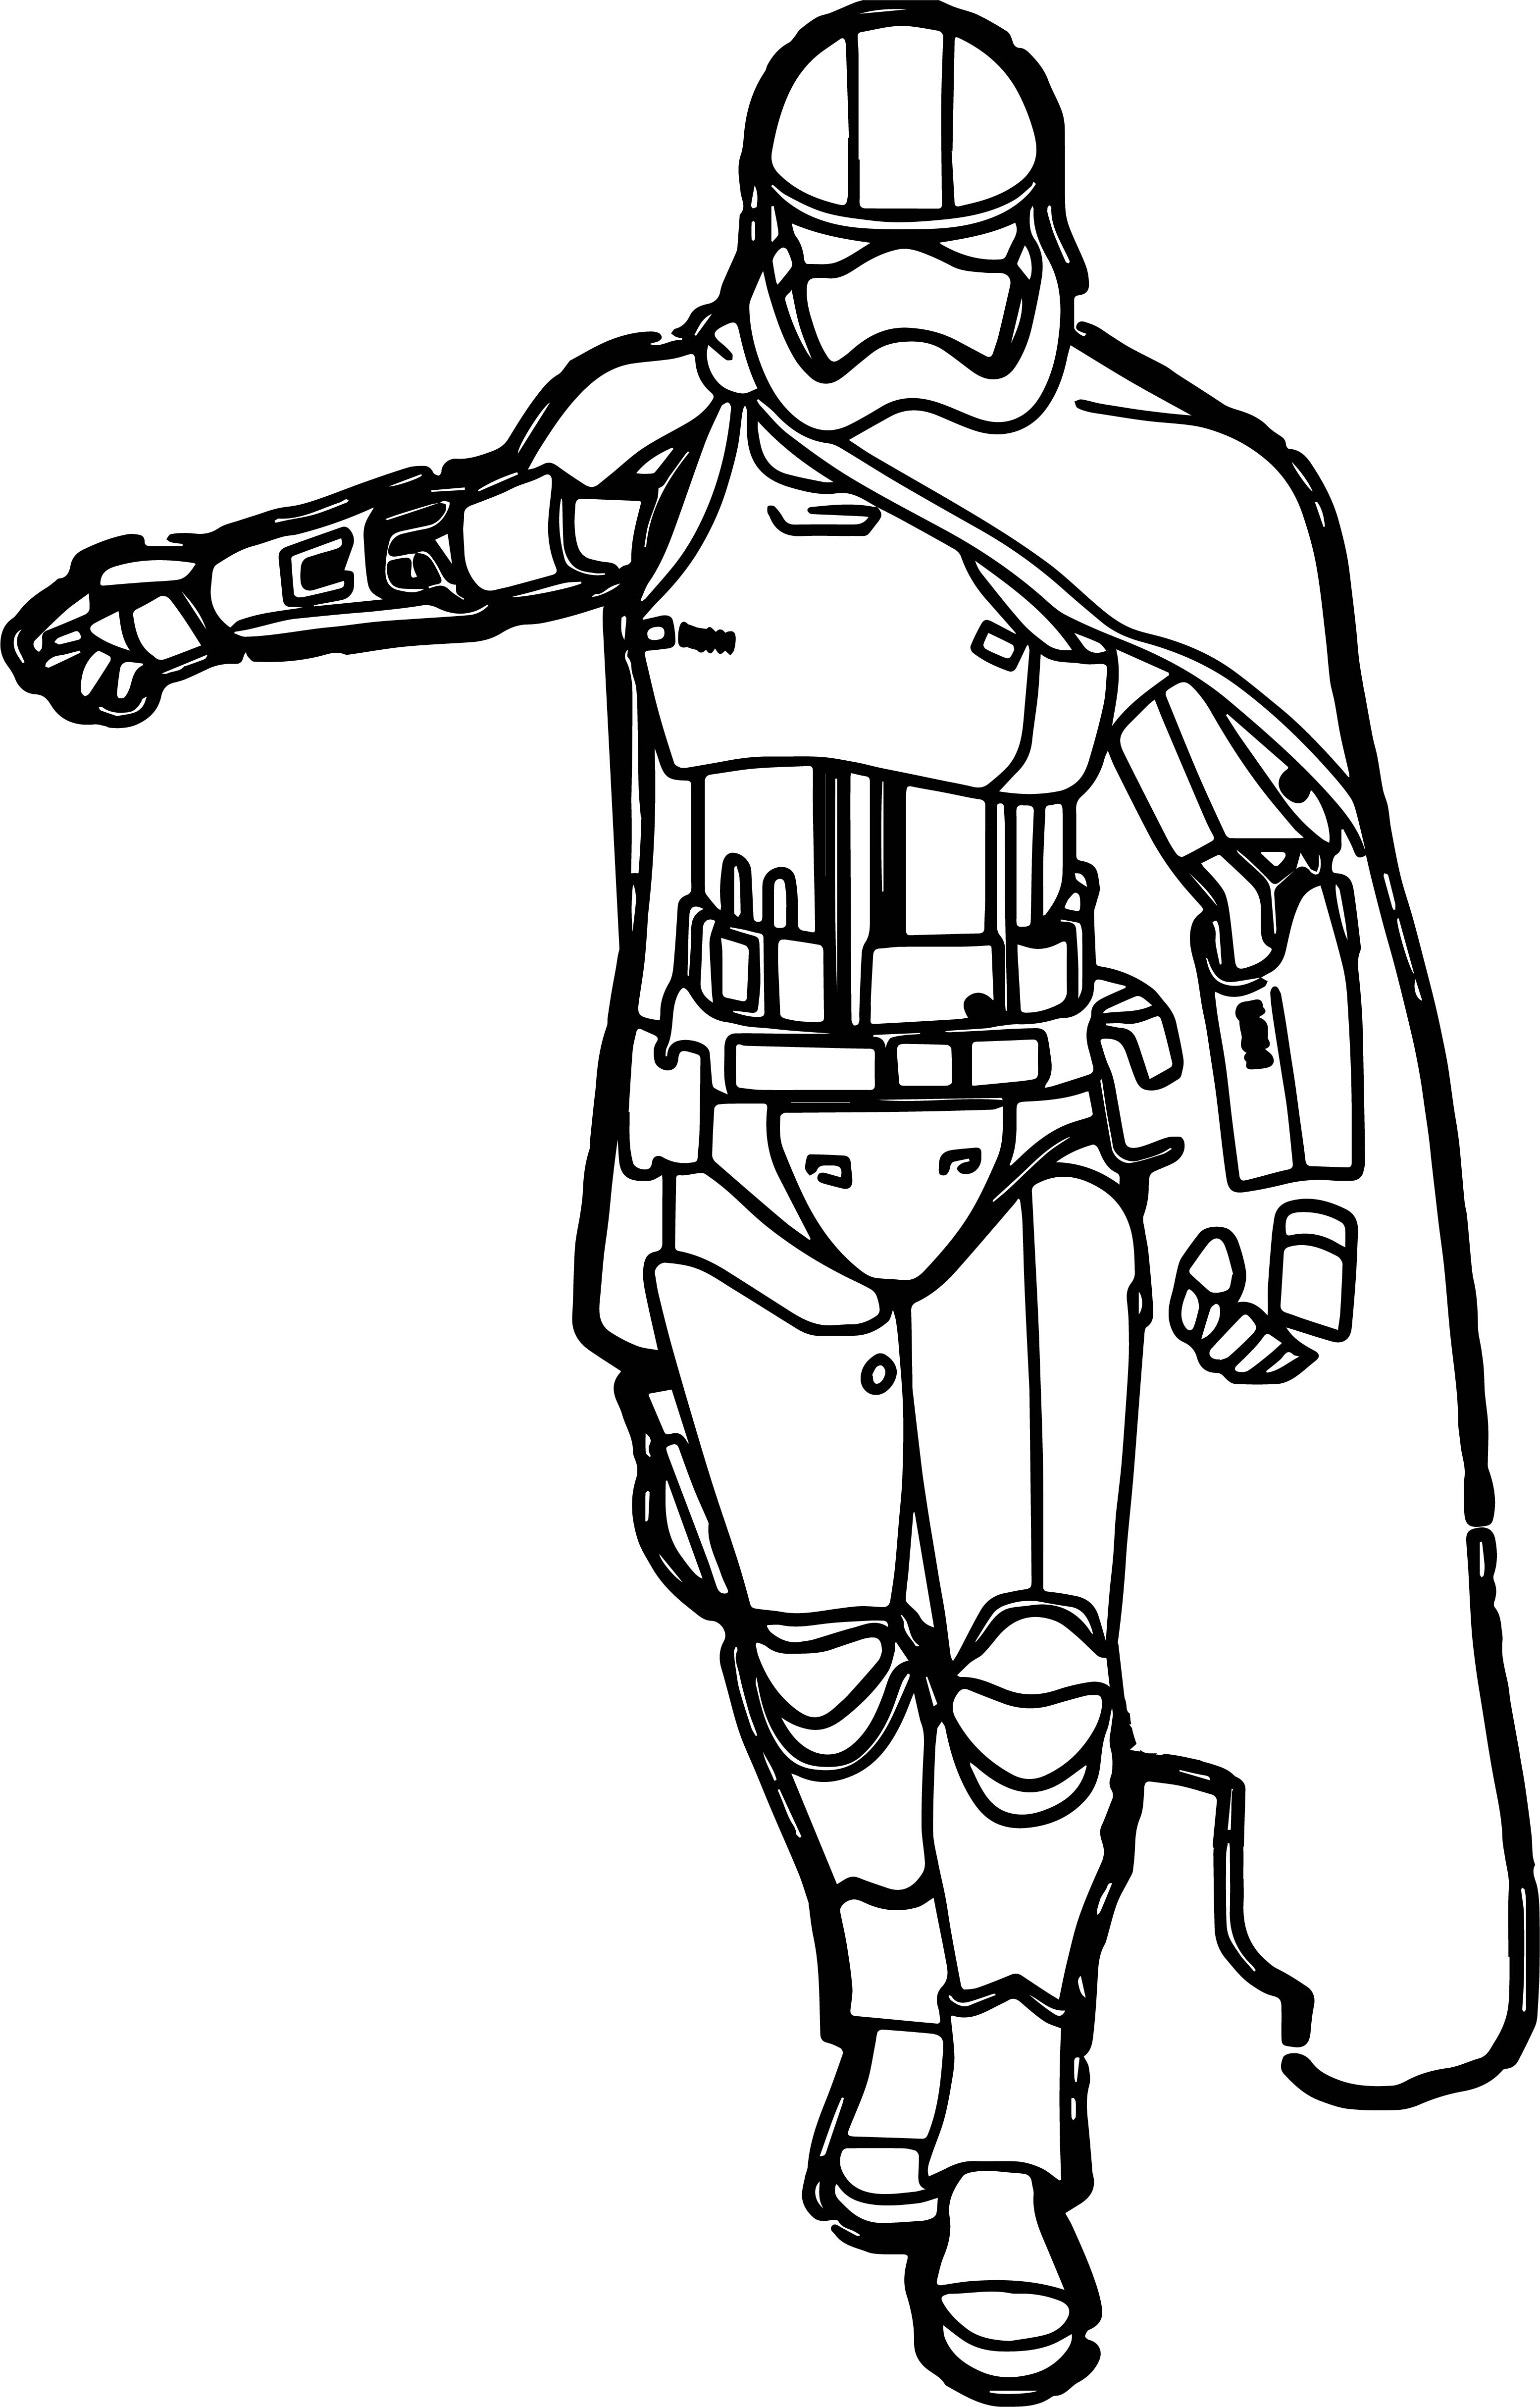 Star Wars The Force Awakens Captain Phasma Character Coloring Pages